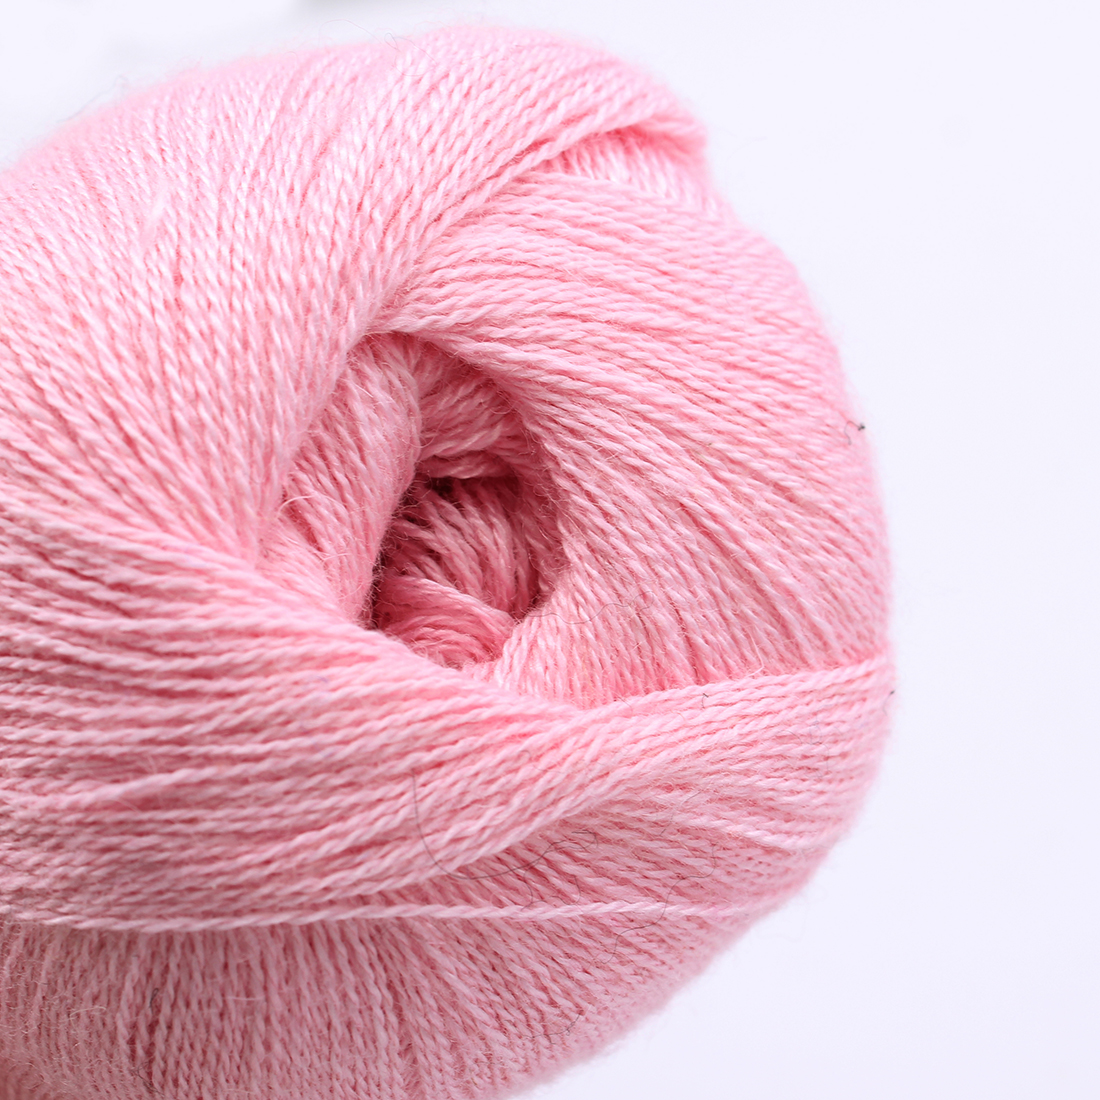 Cashmere Knitting Yarn : Product details of Cashmere Soft Knitting Weaving Wool Yarn Crocheting ...